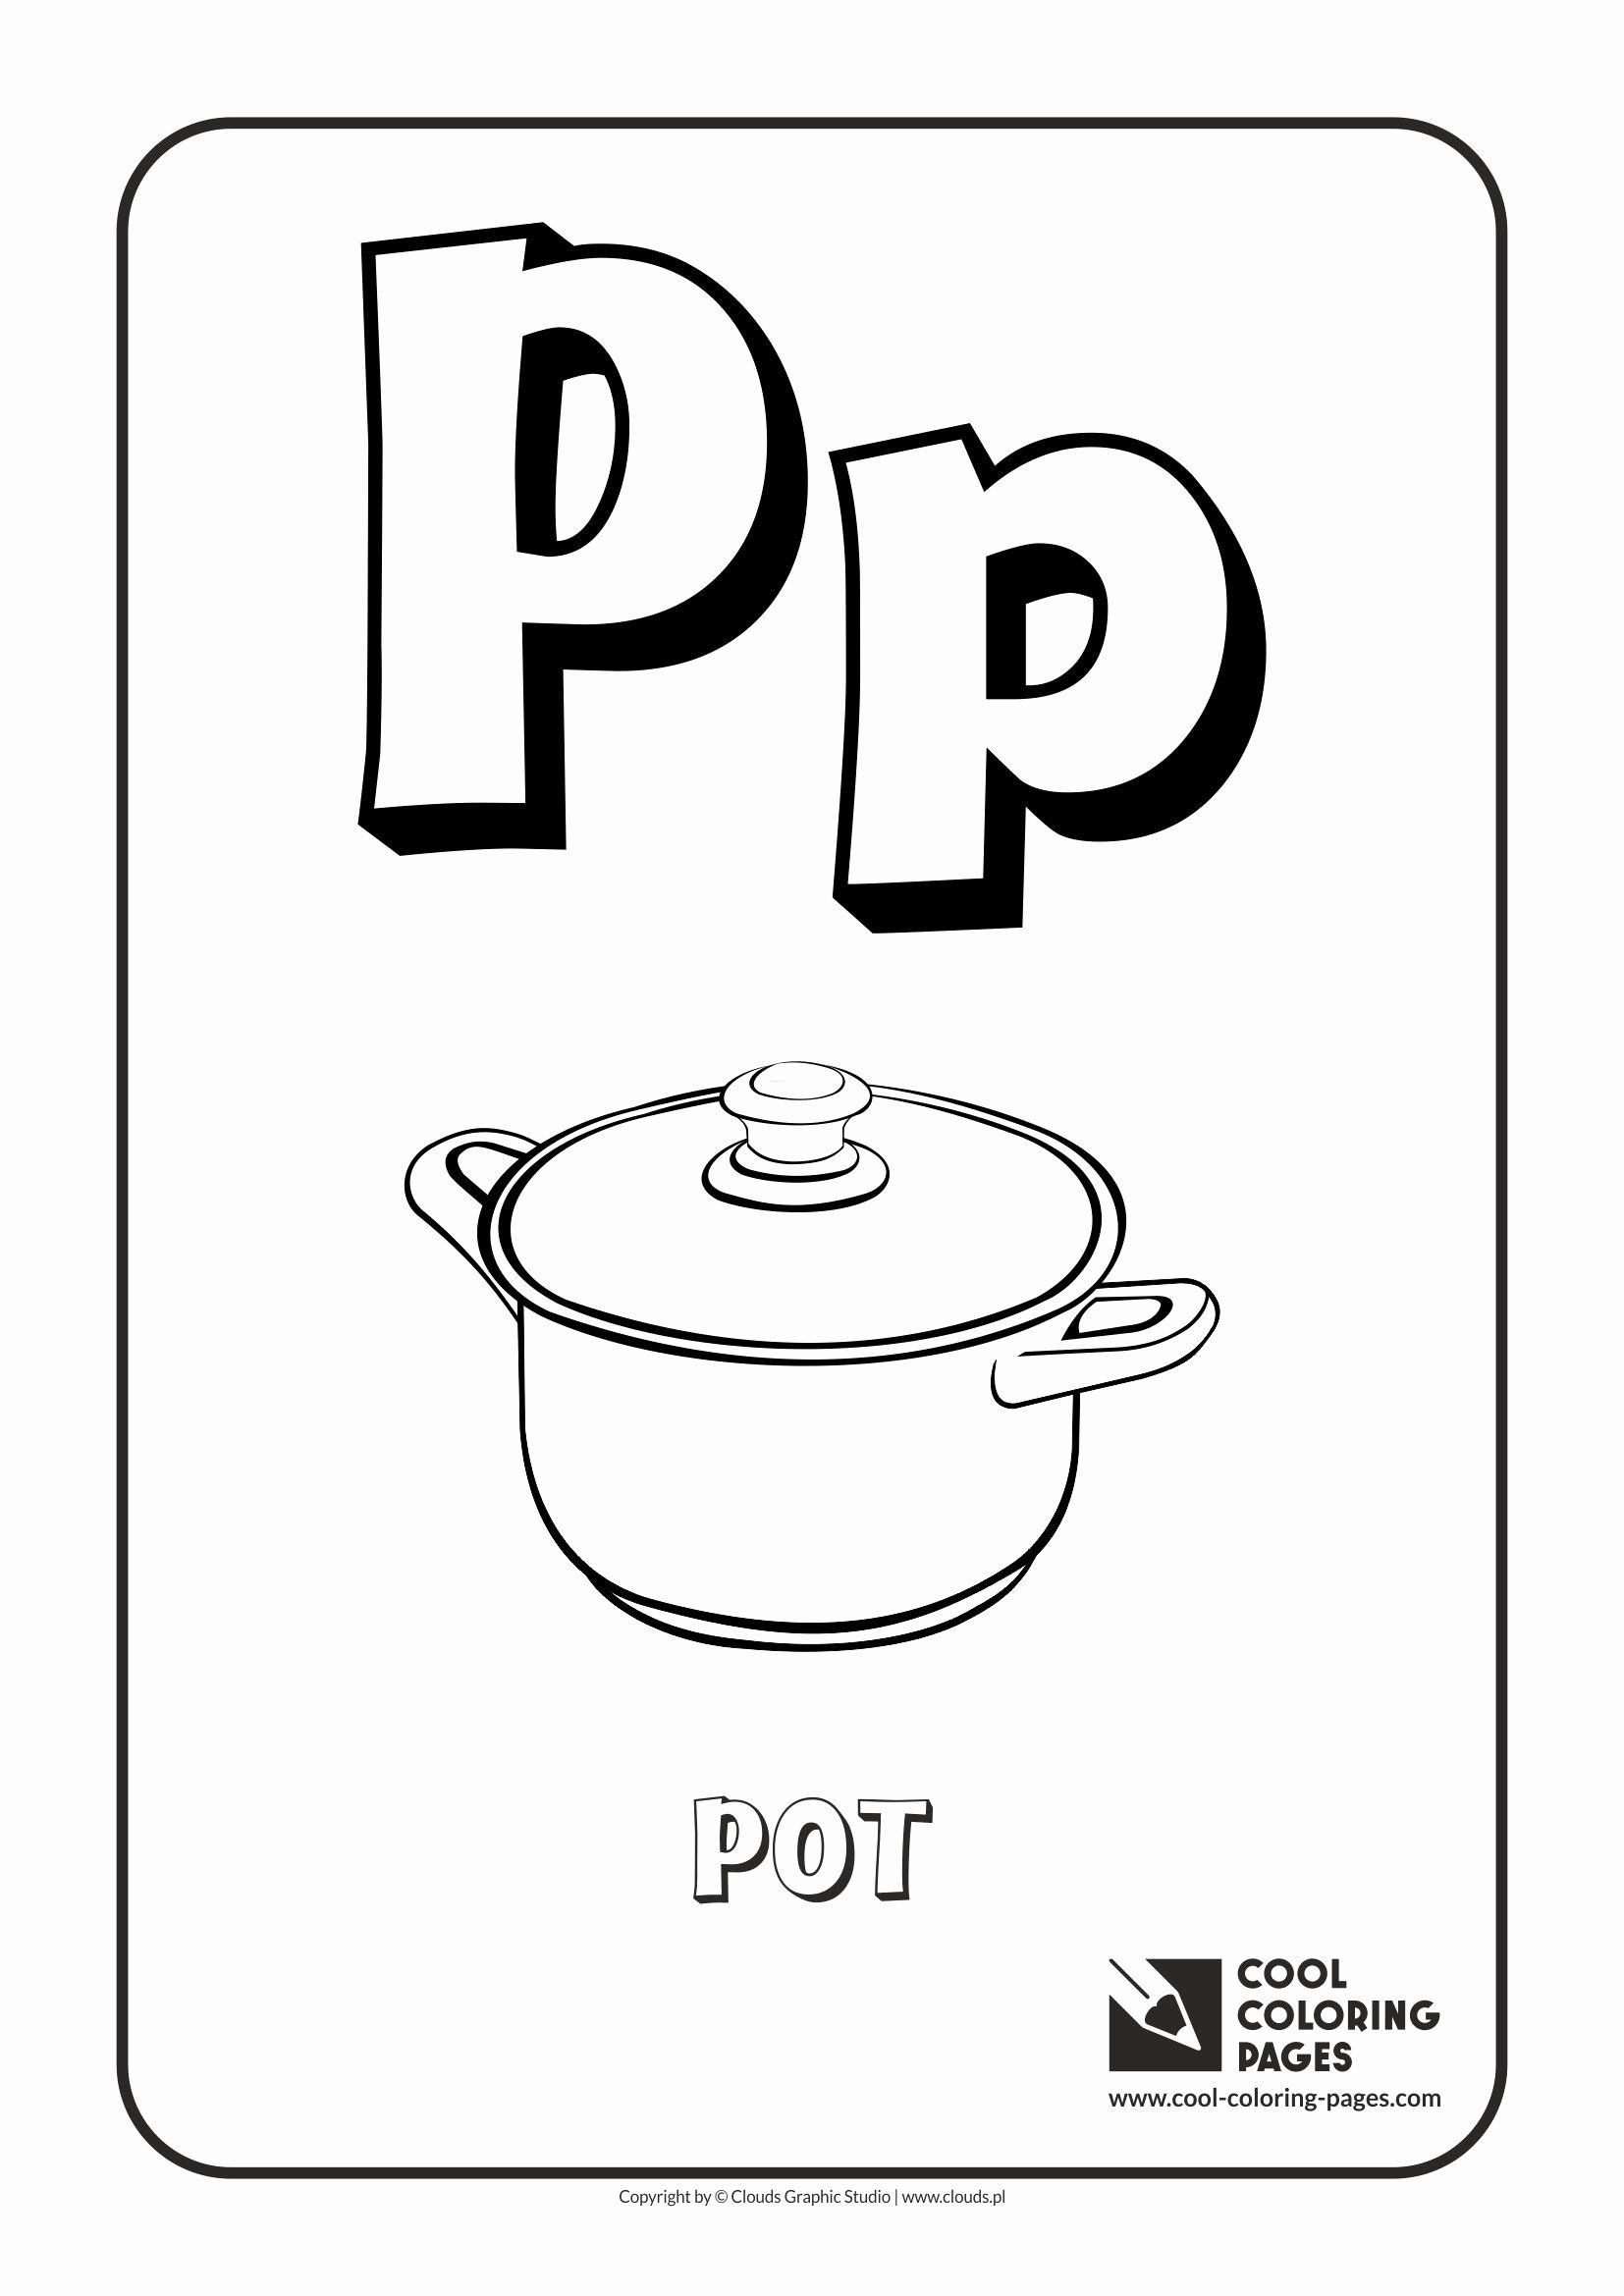 Letter P Coloring Page Lovely Cool Coloring Pages Letter P Coloring Alphabet Cool Letter A Coloring Pages Coloring Pages Coloring Pages Inspirational